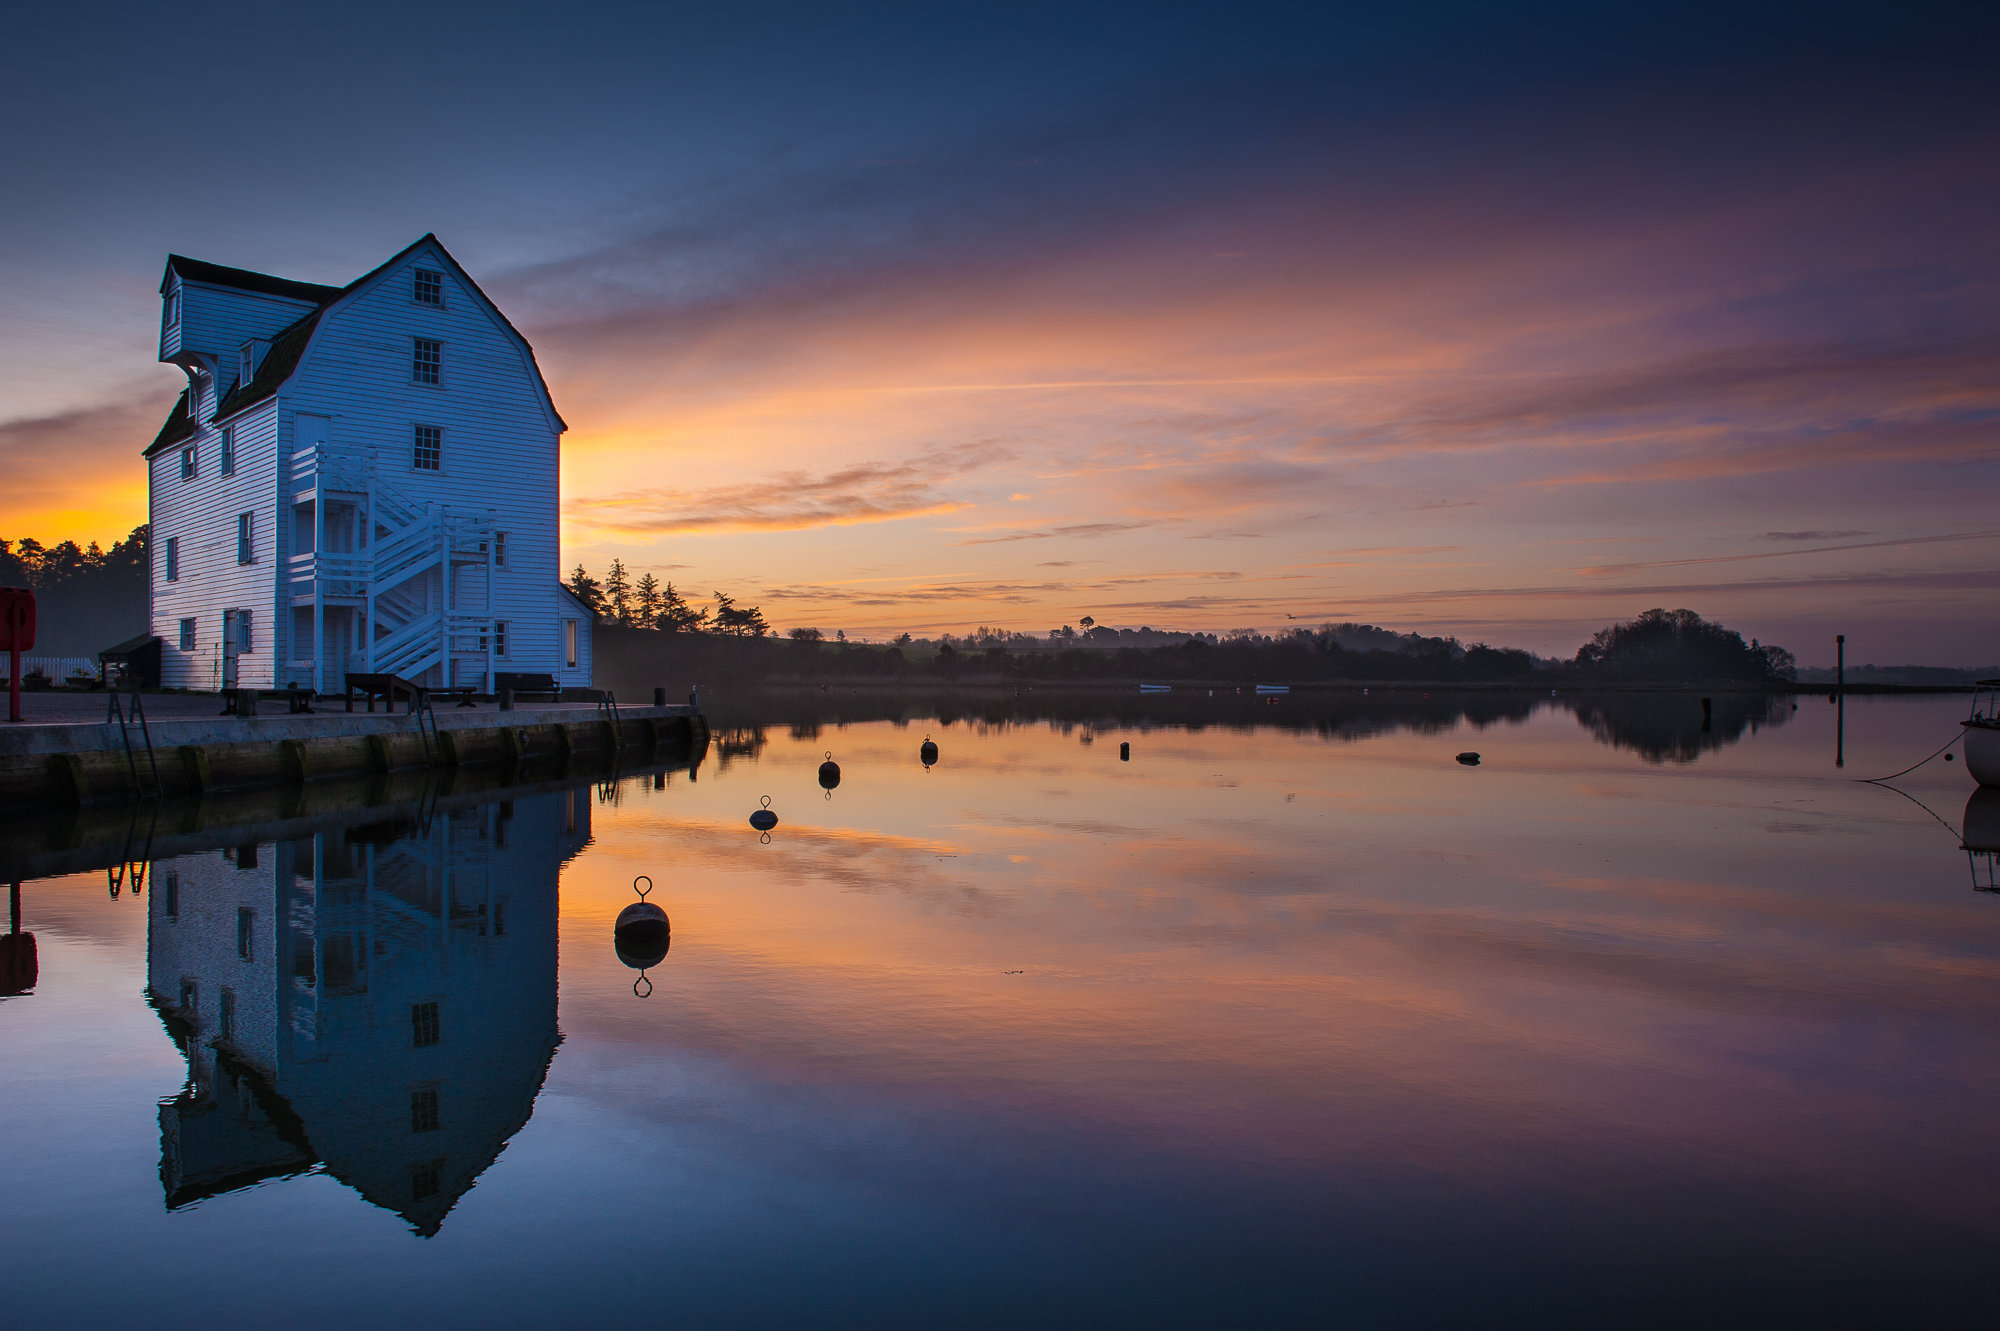 Woodbridge Tide Mill, Suffolk